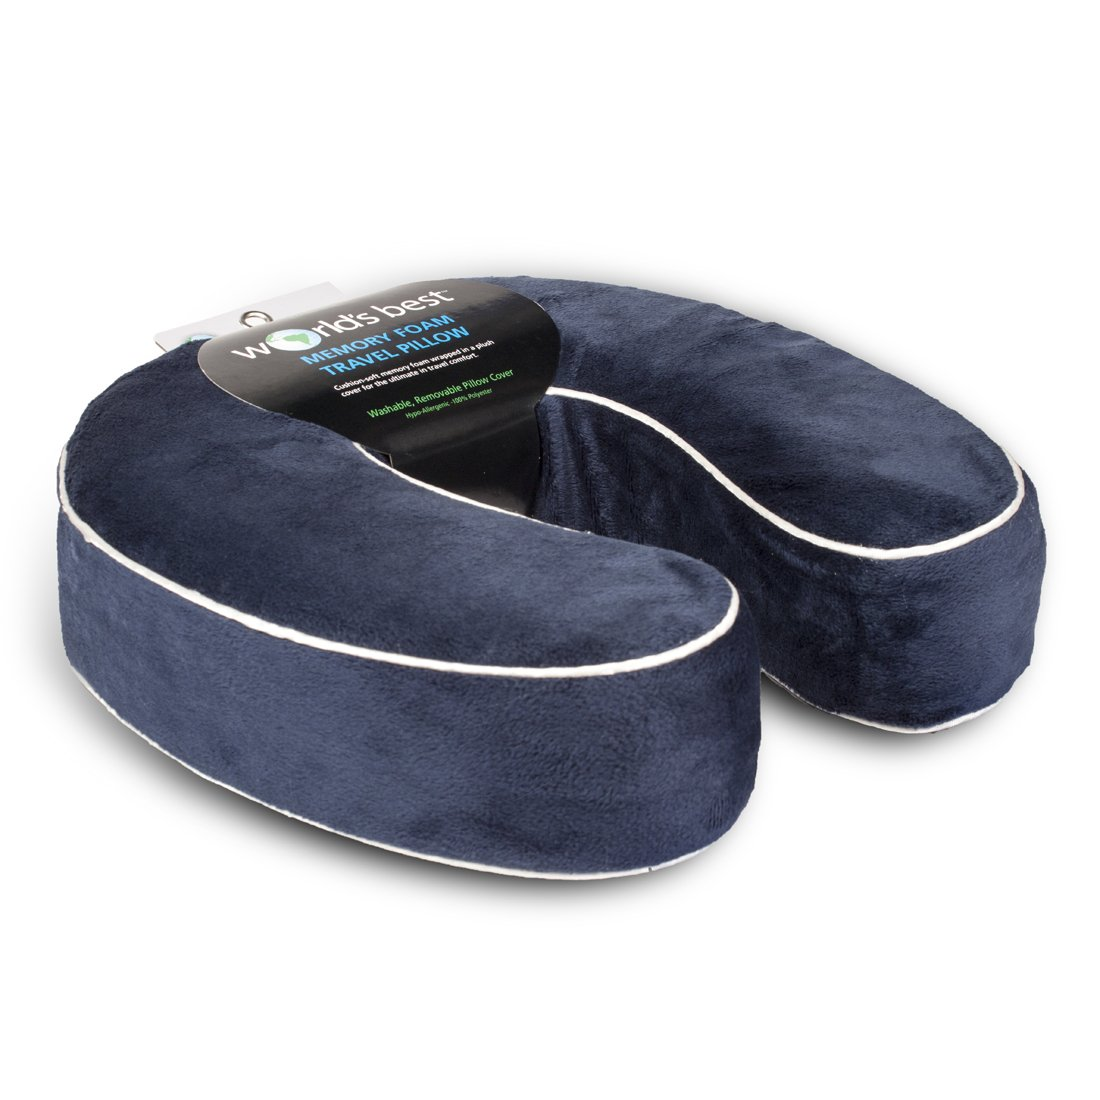 Worlds best cushion soft memory foam neck pillow navy for Best soft memory foam pillow